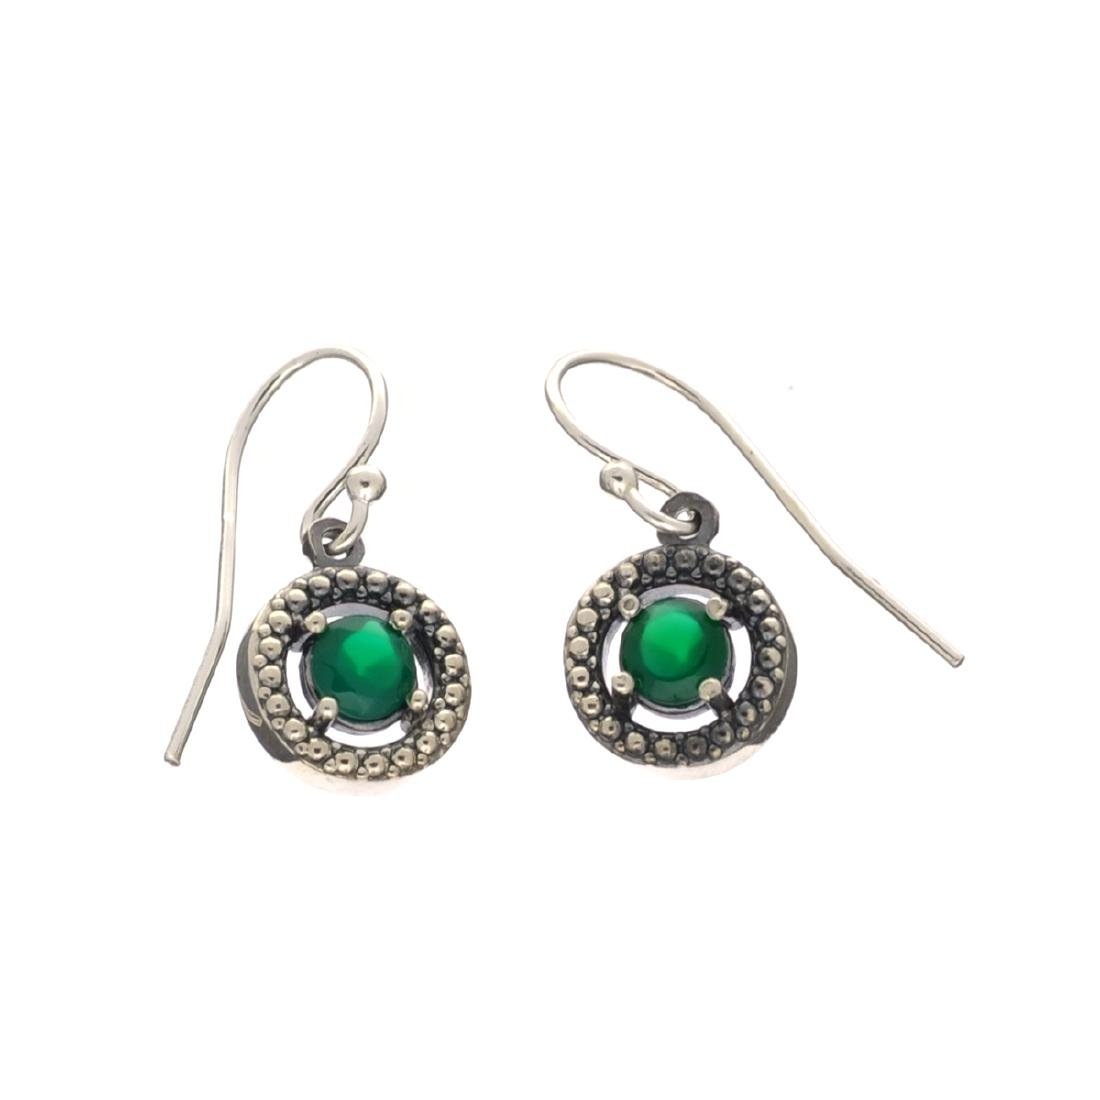 Rare Designer Sebastian Vintage, Emerald And Sterling